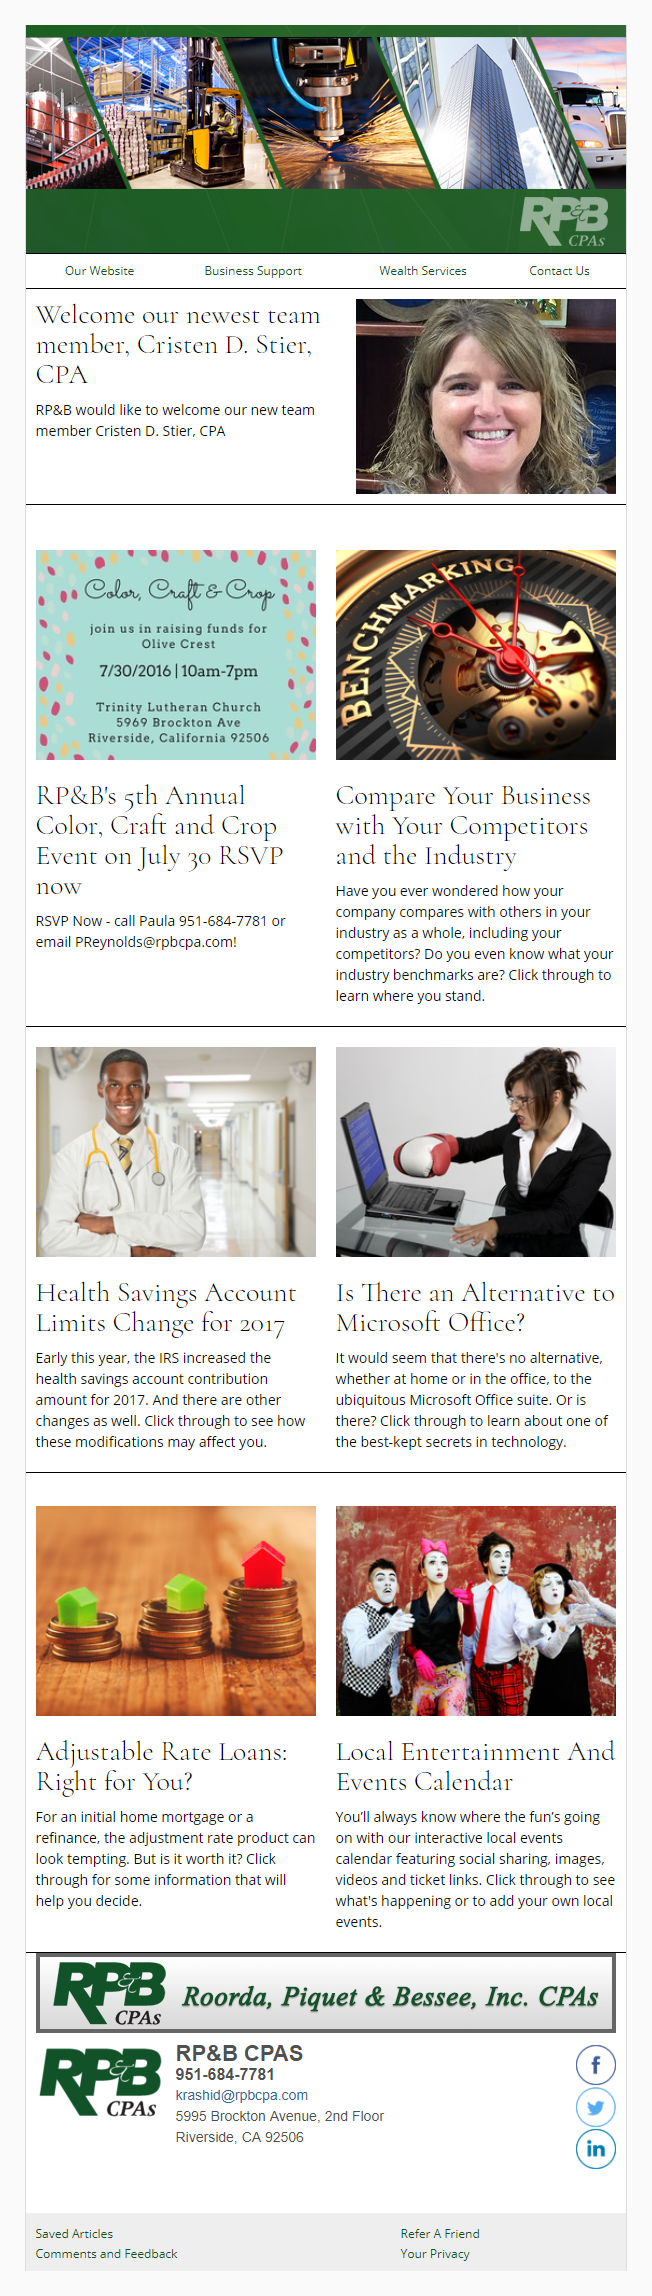 RP&B CPAs - IndustryNewsletters Sample Email Newsletter